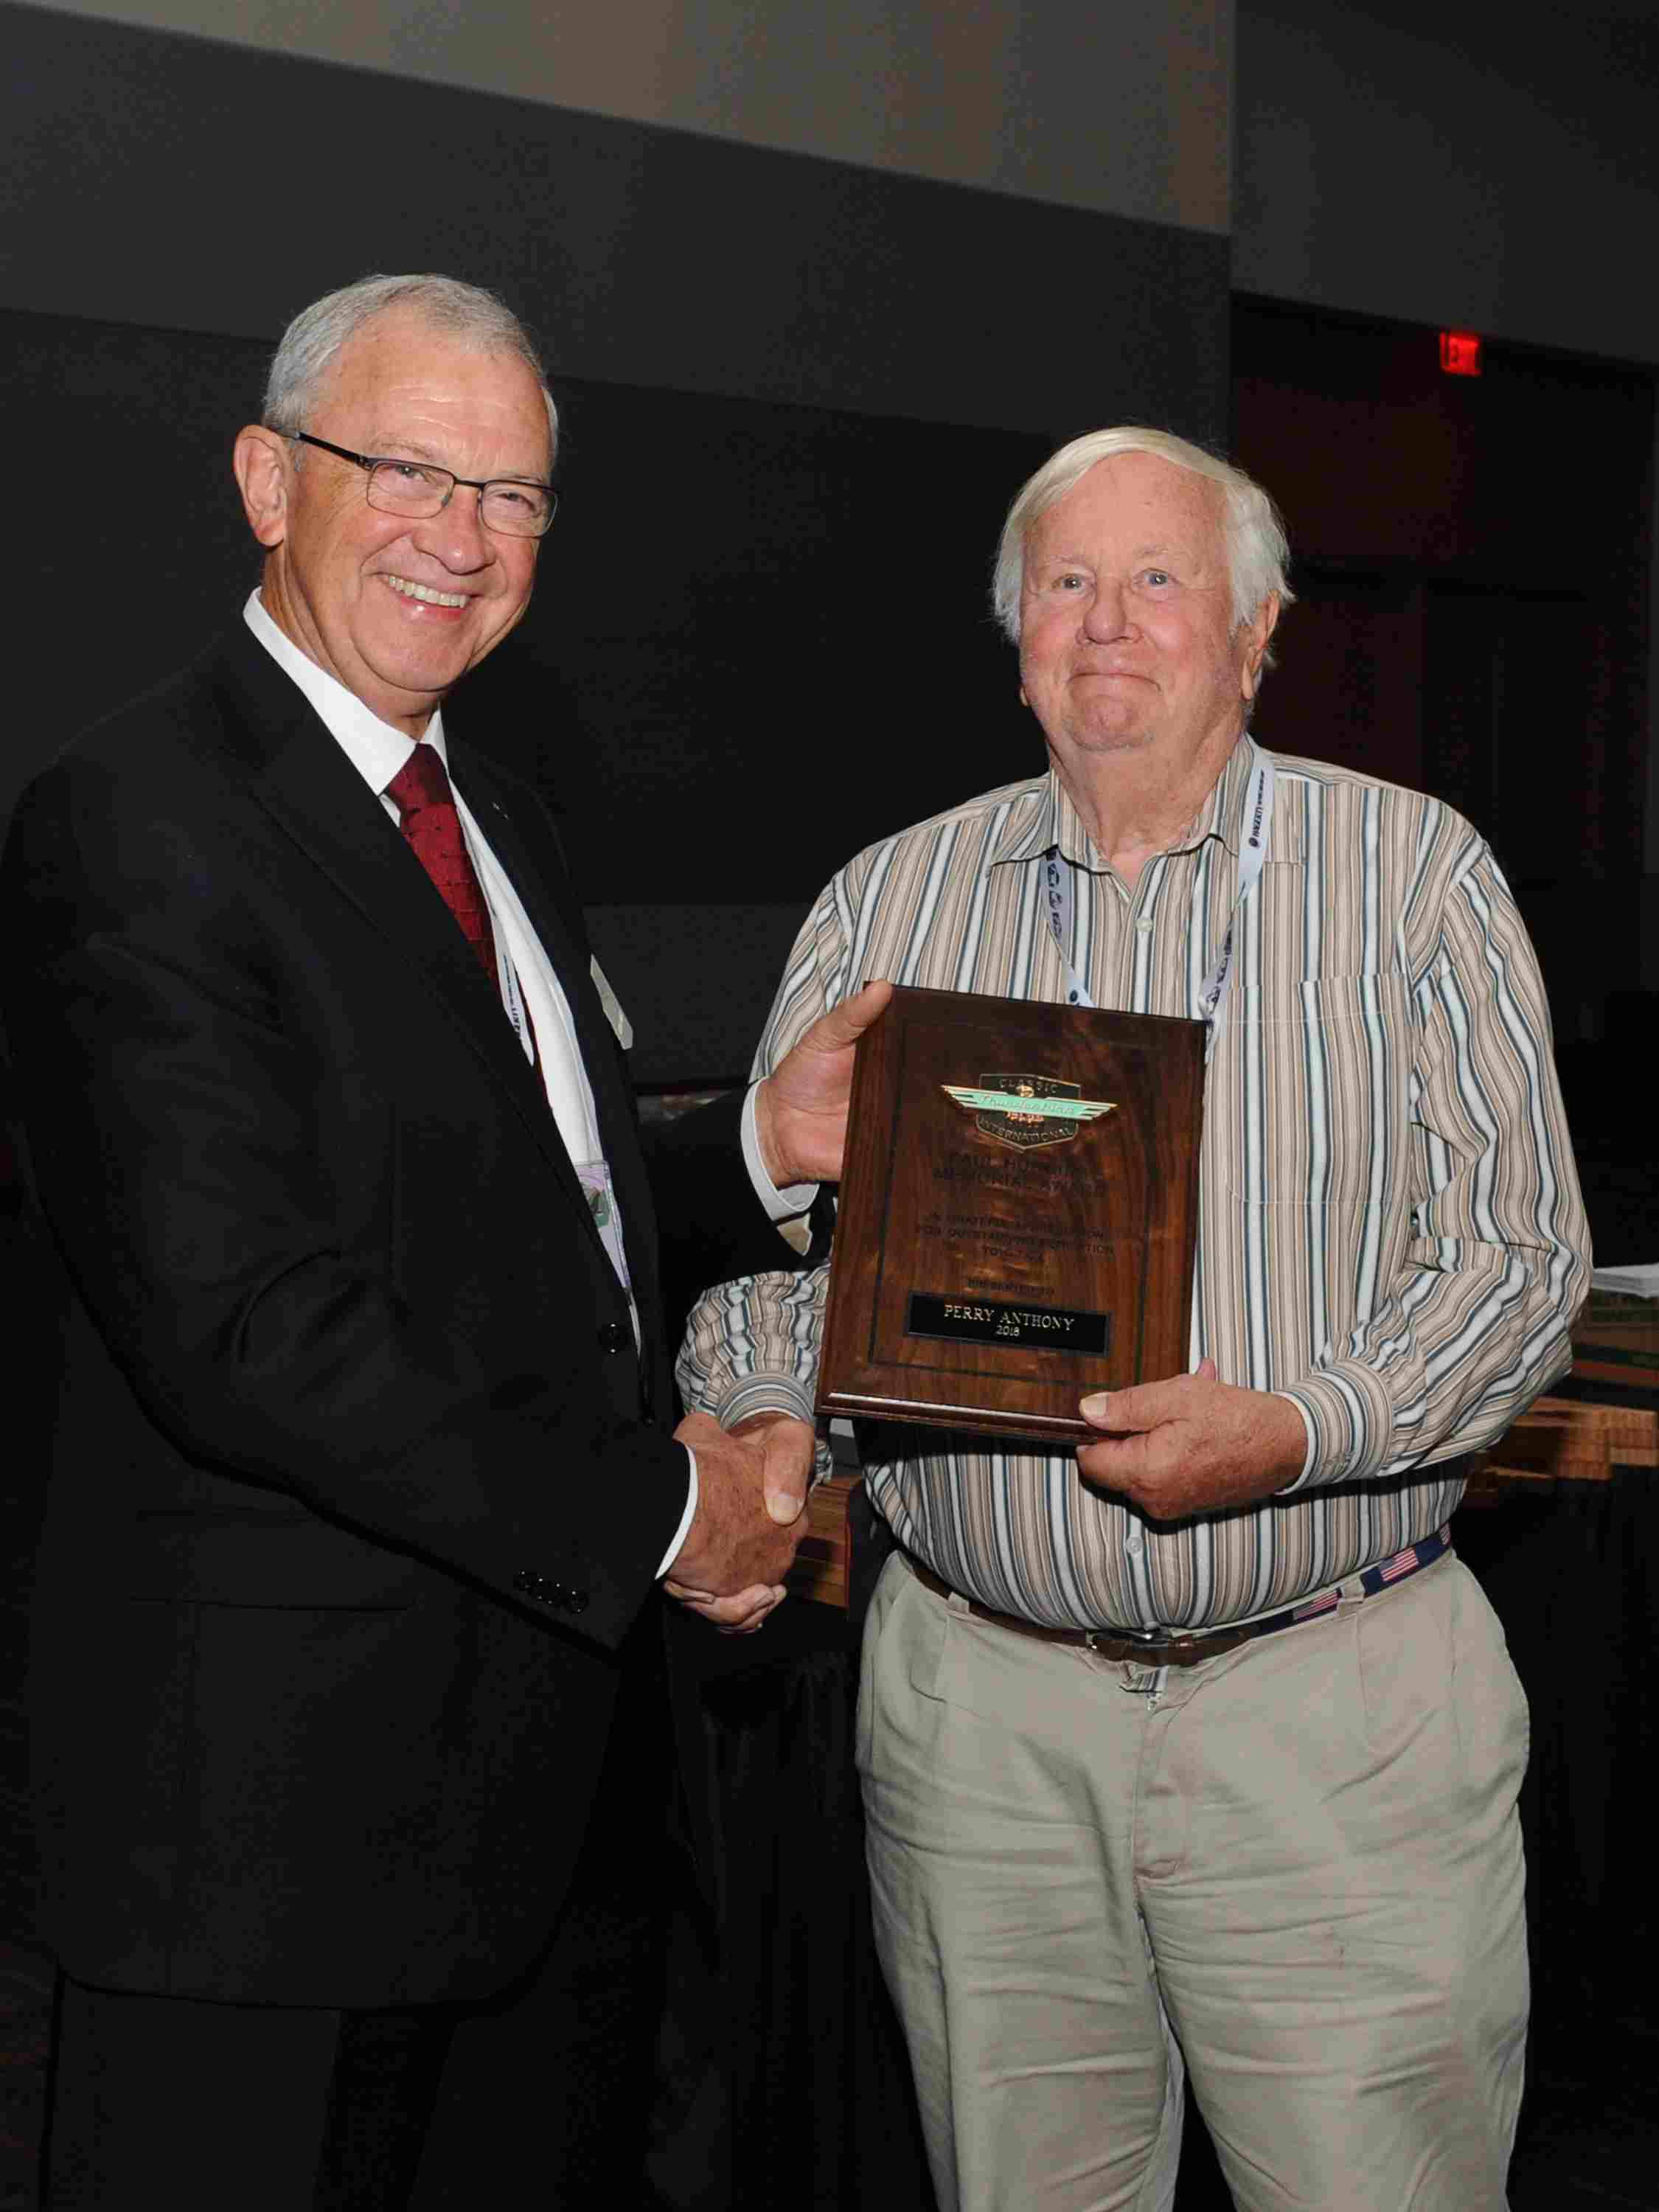 Perry Anthony wins Paul Hudgins Award